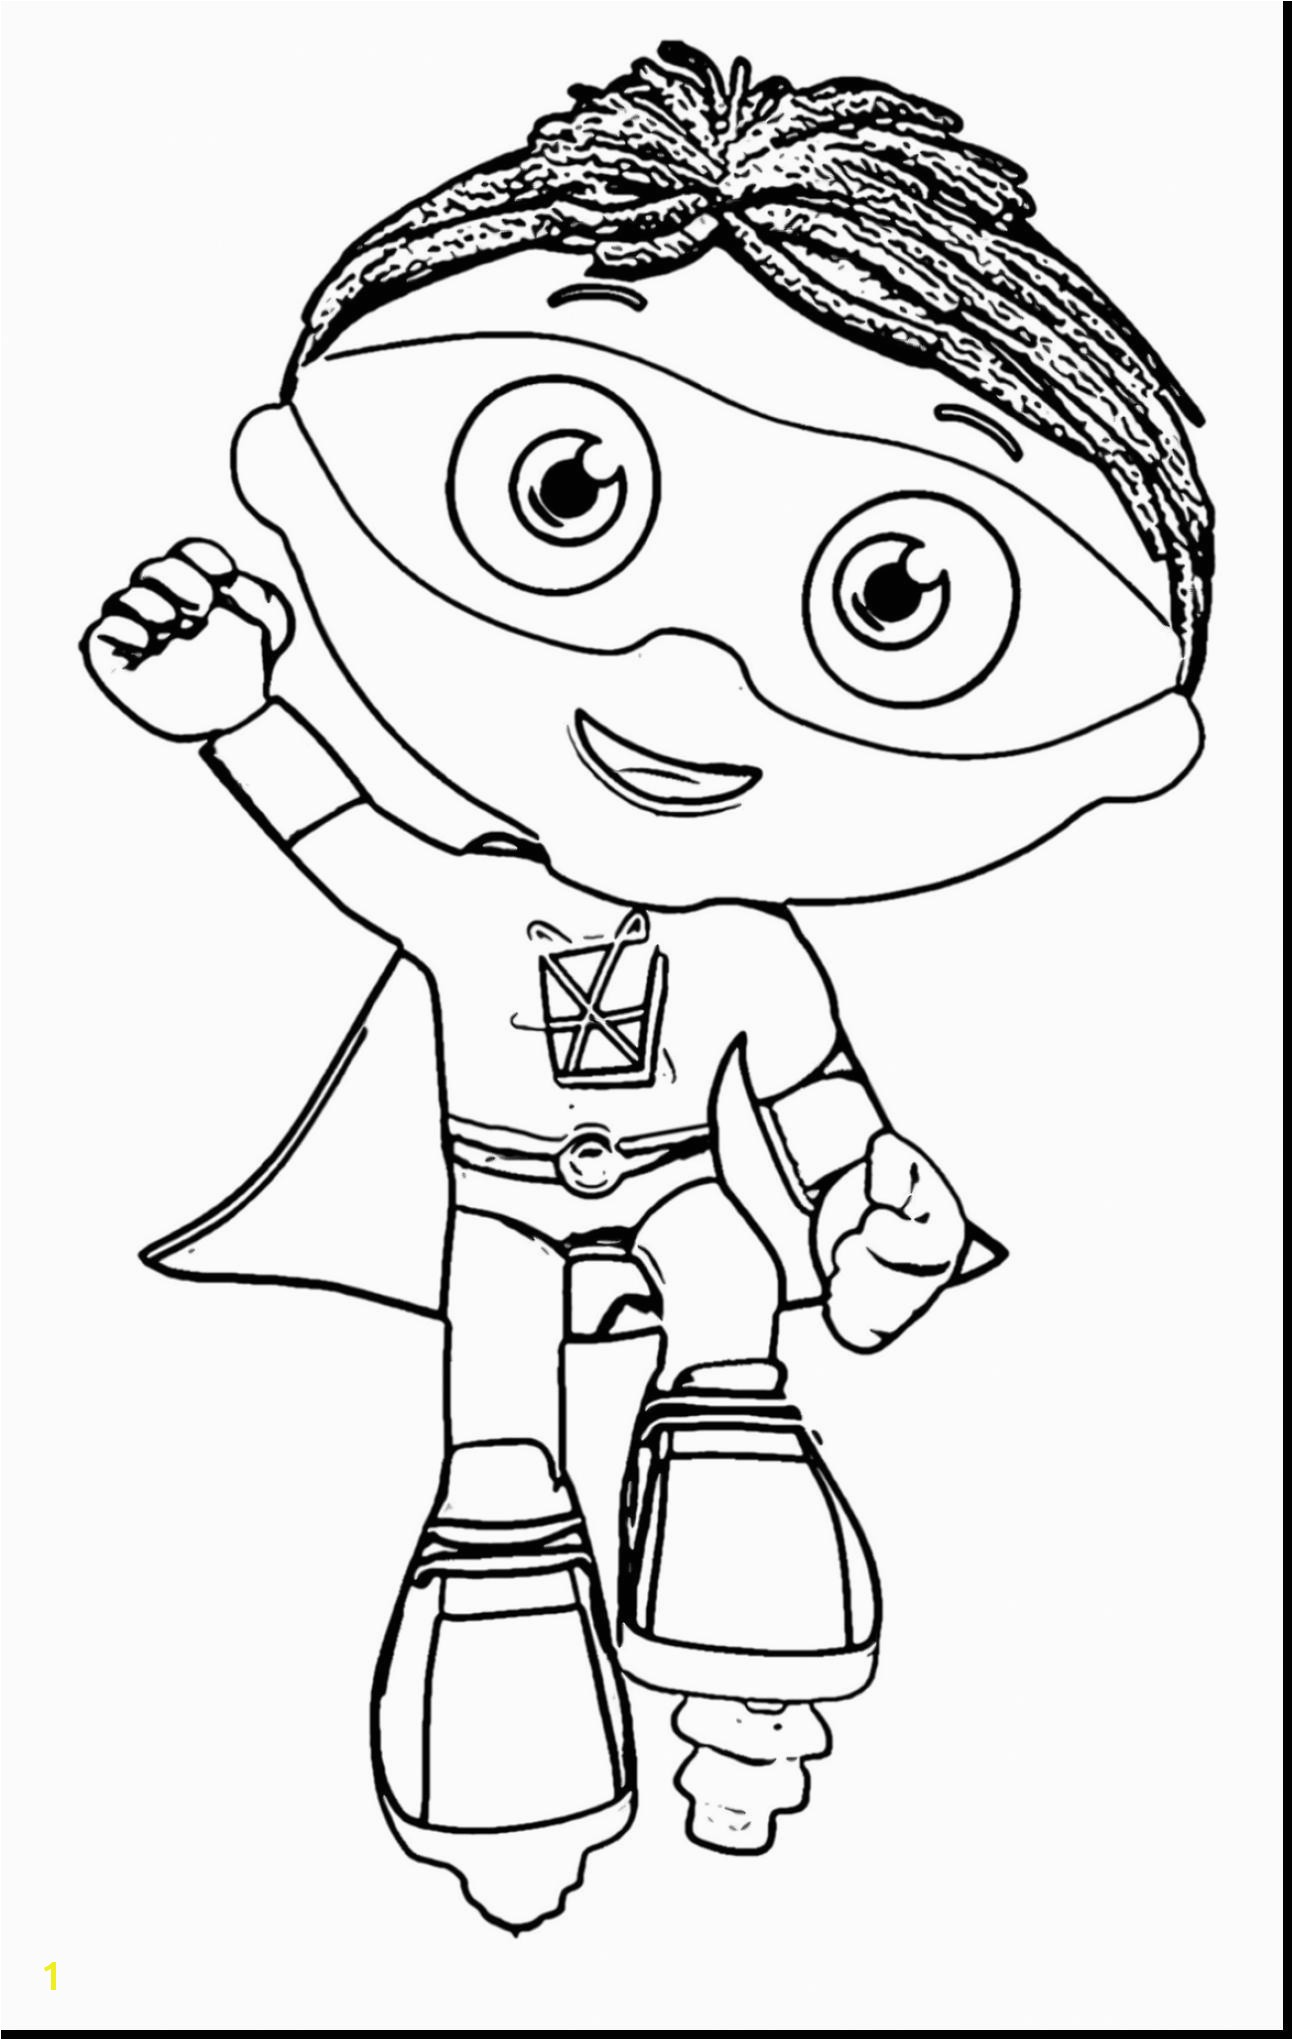 Super Why Coloring Pages Fantastic Page Style With Ribsvigyapan Incredible At Super Why Coloring Pages